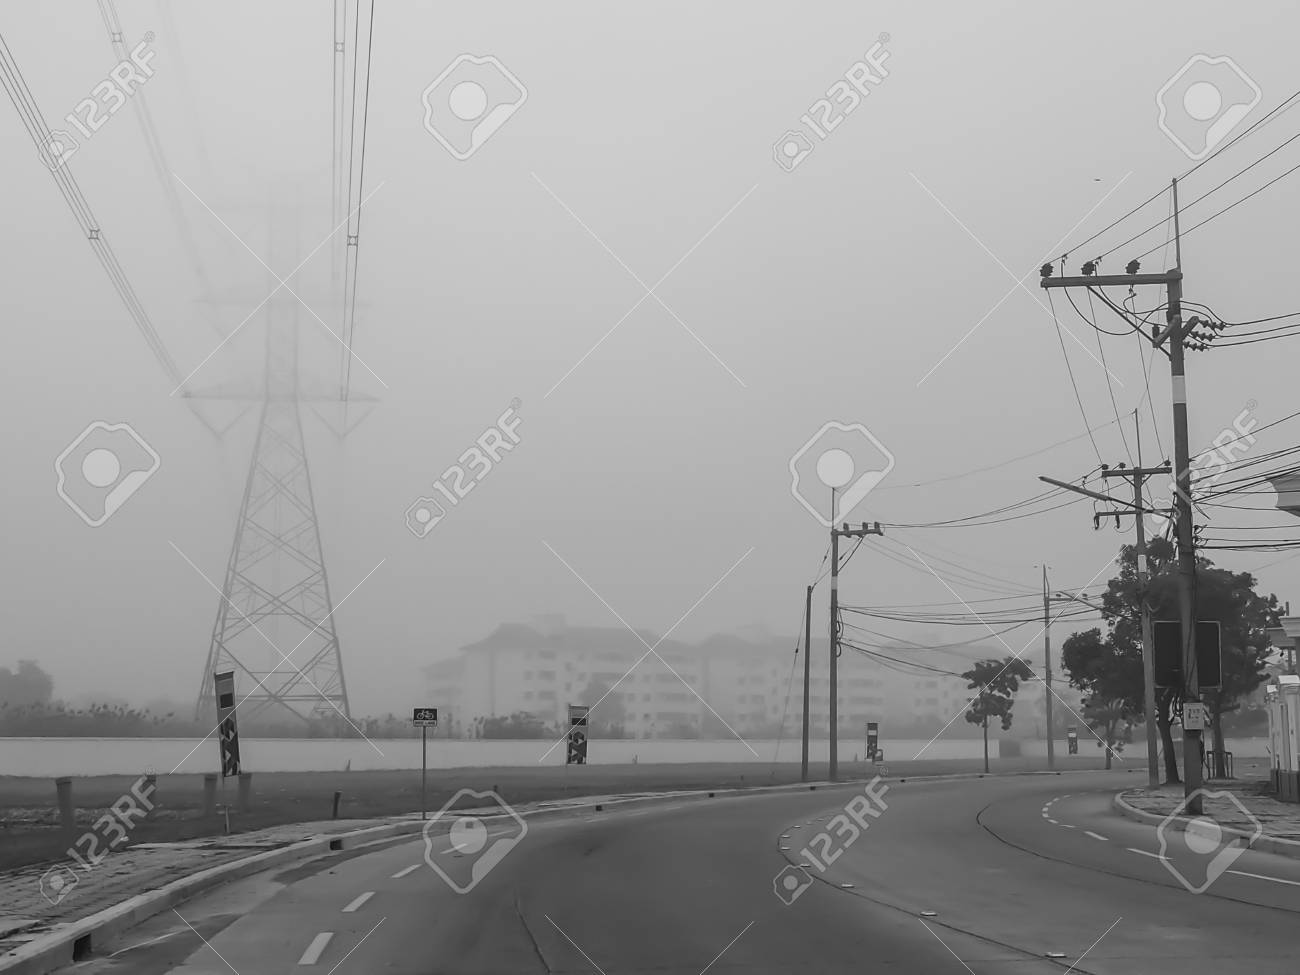 The Road To Run Away From The Cloud Of Fog Time To Escape The